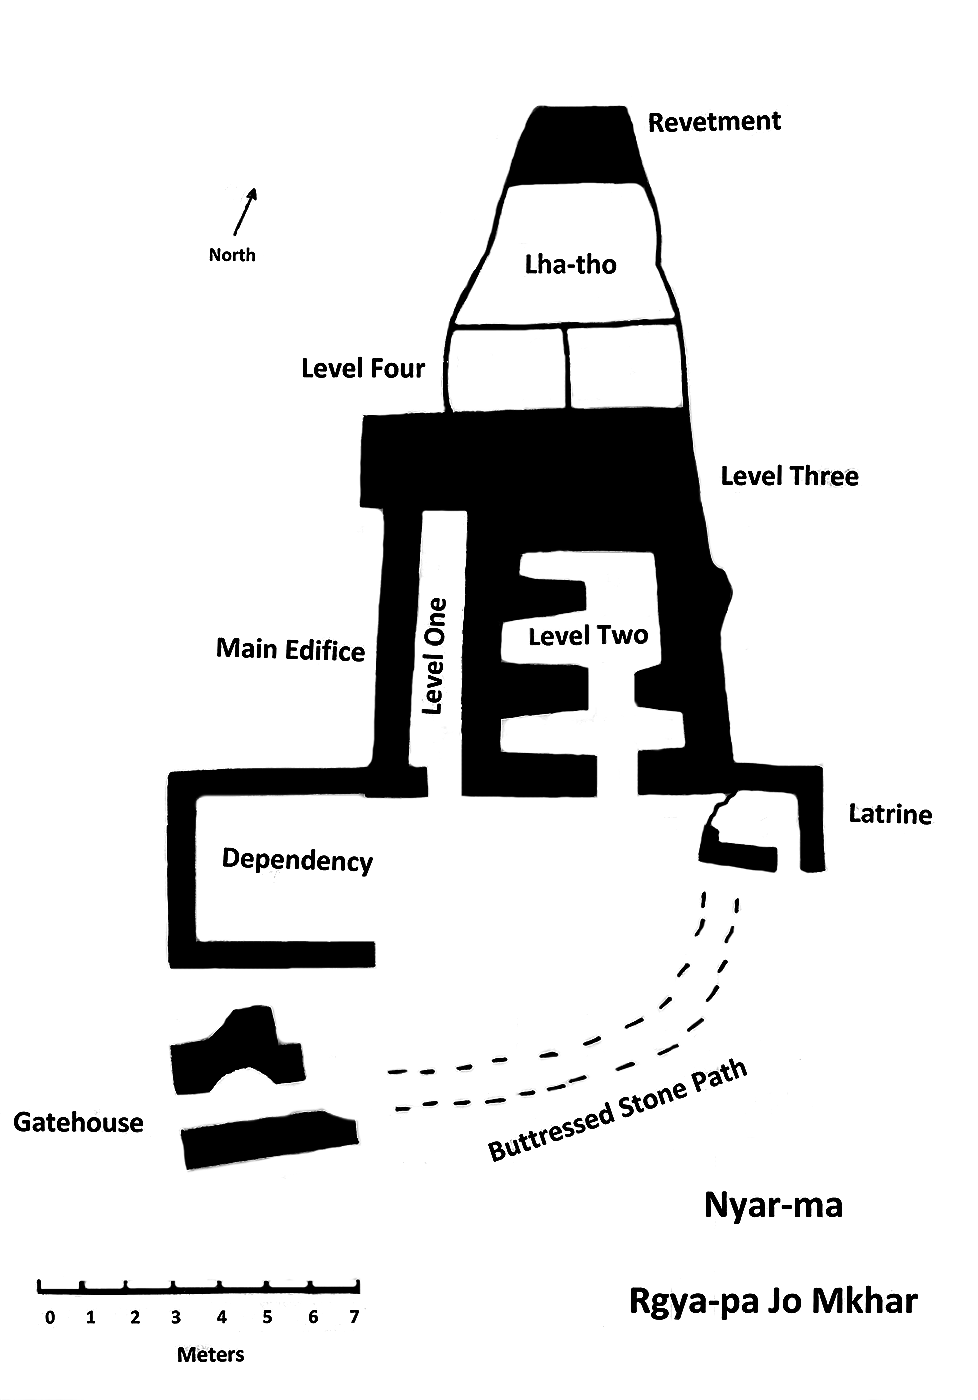 Fig. 16. A plan of Gyapa Jo Khar.